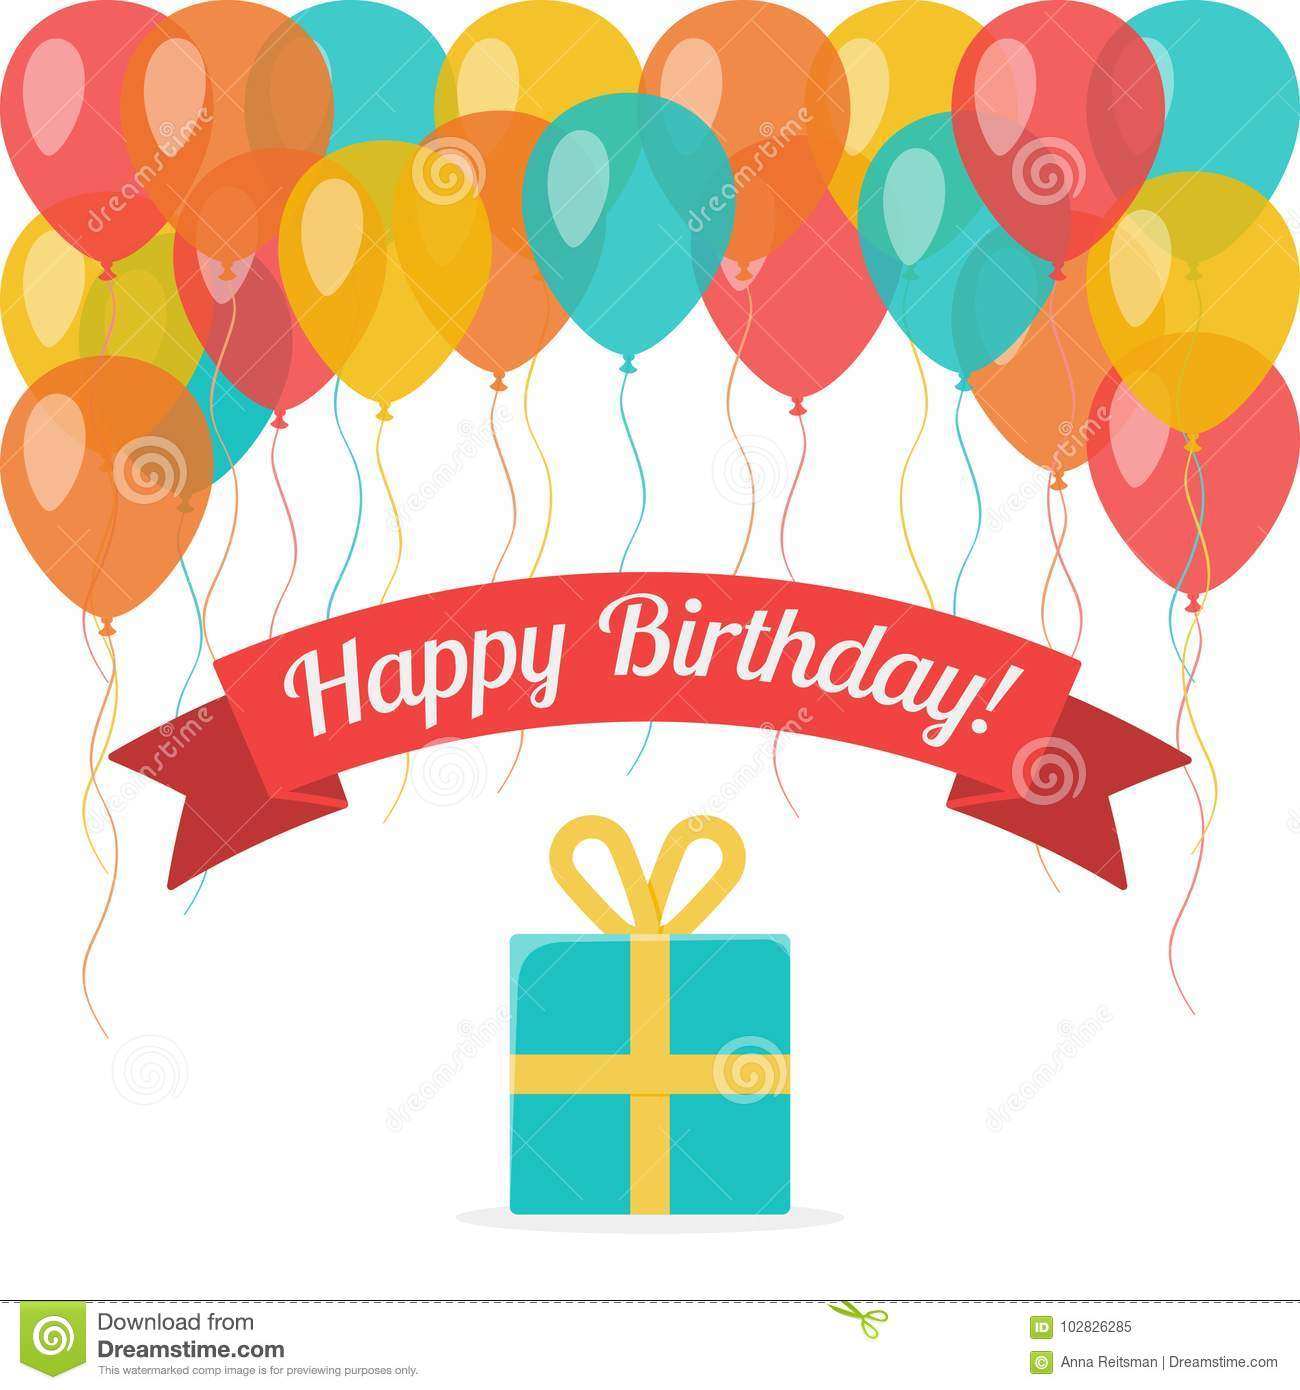 Happy Birthday Greeting Card With Flying Balloons And Gift Box On White Background